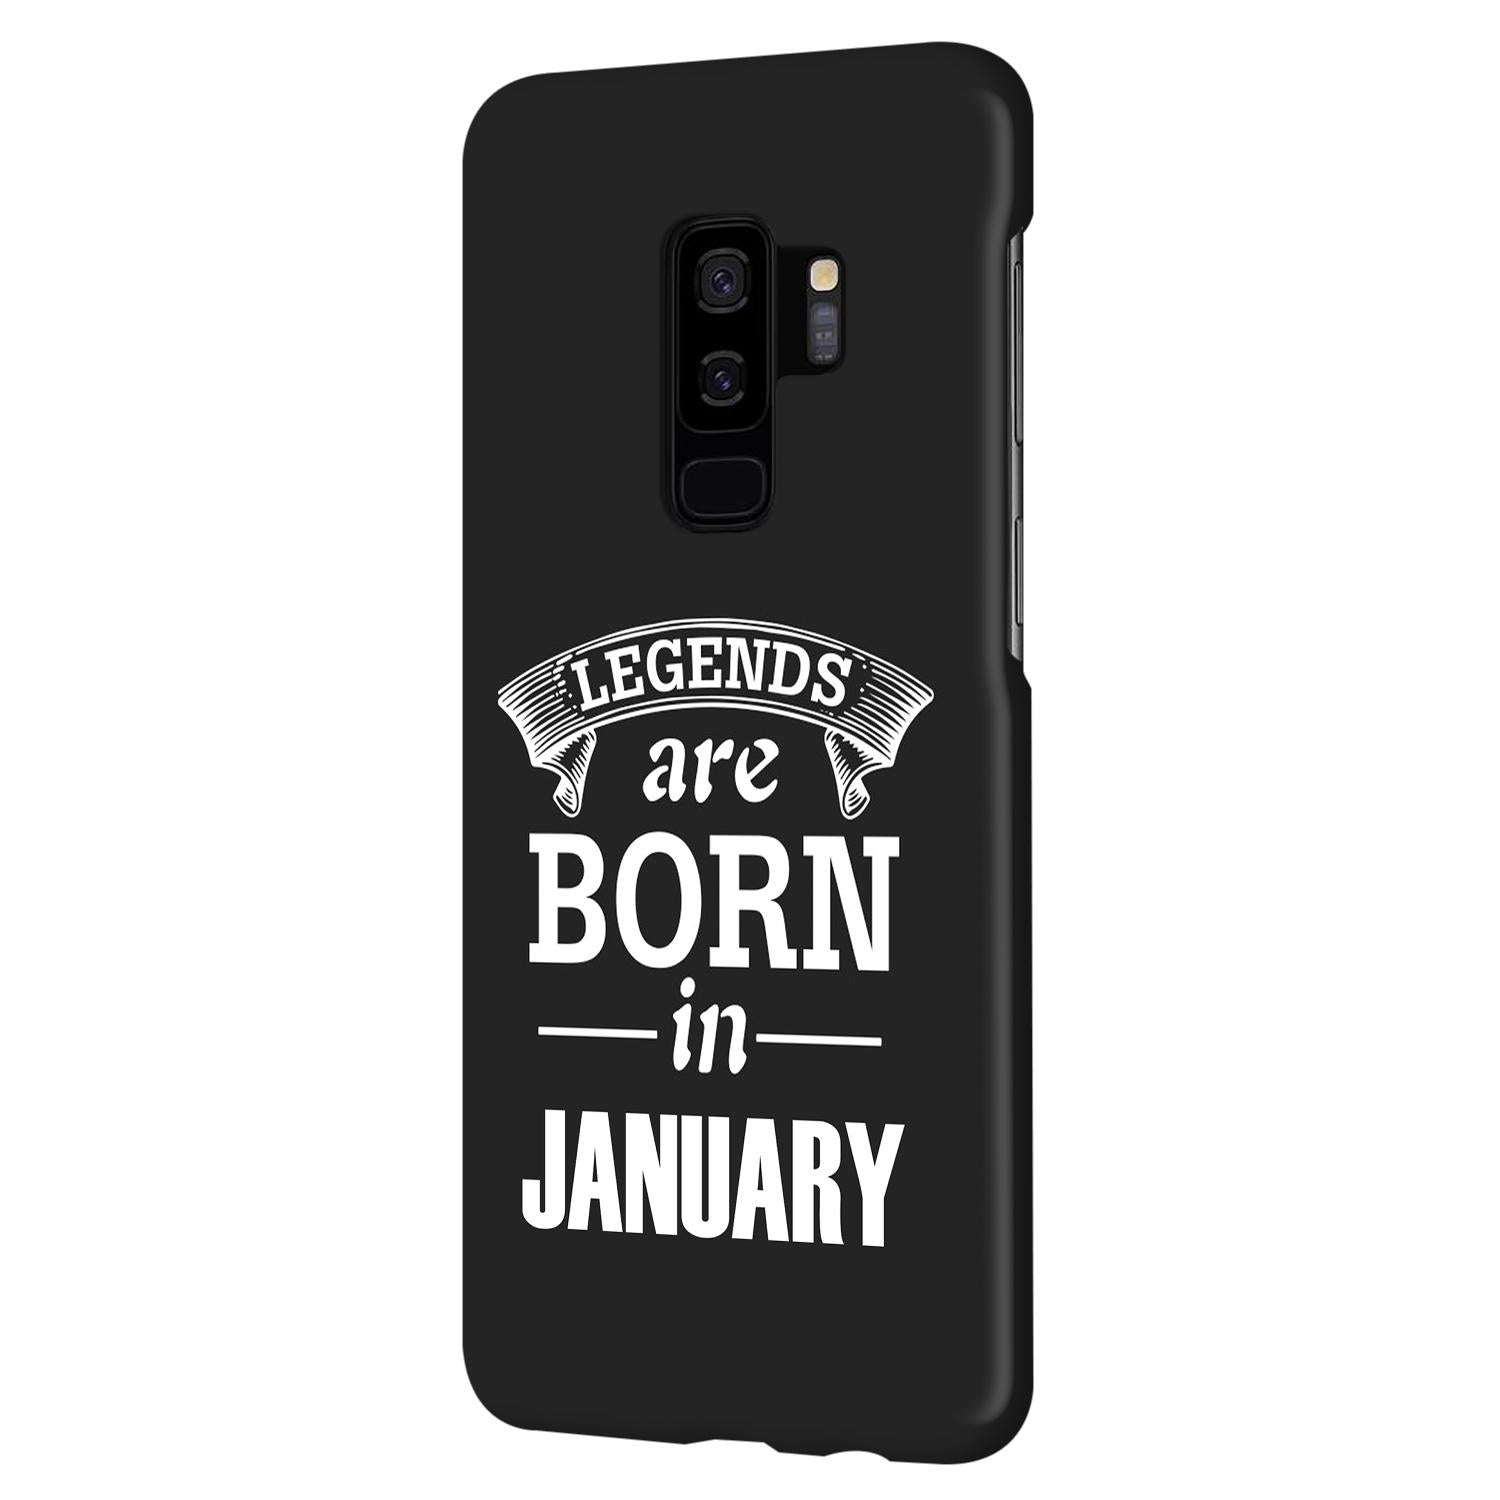 Legends January Samsung Galaxy S9 Plus Mobile Cover Case